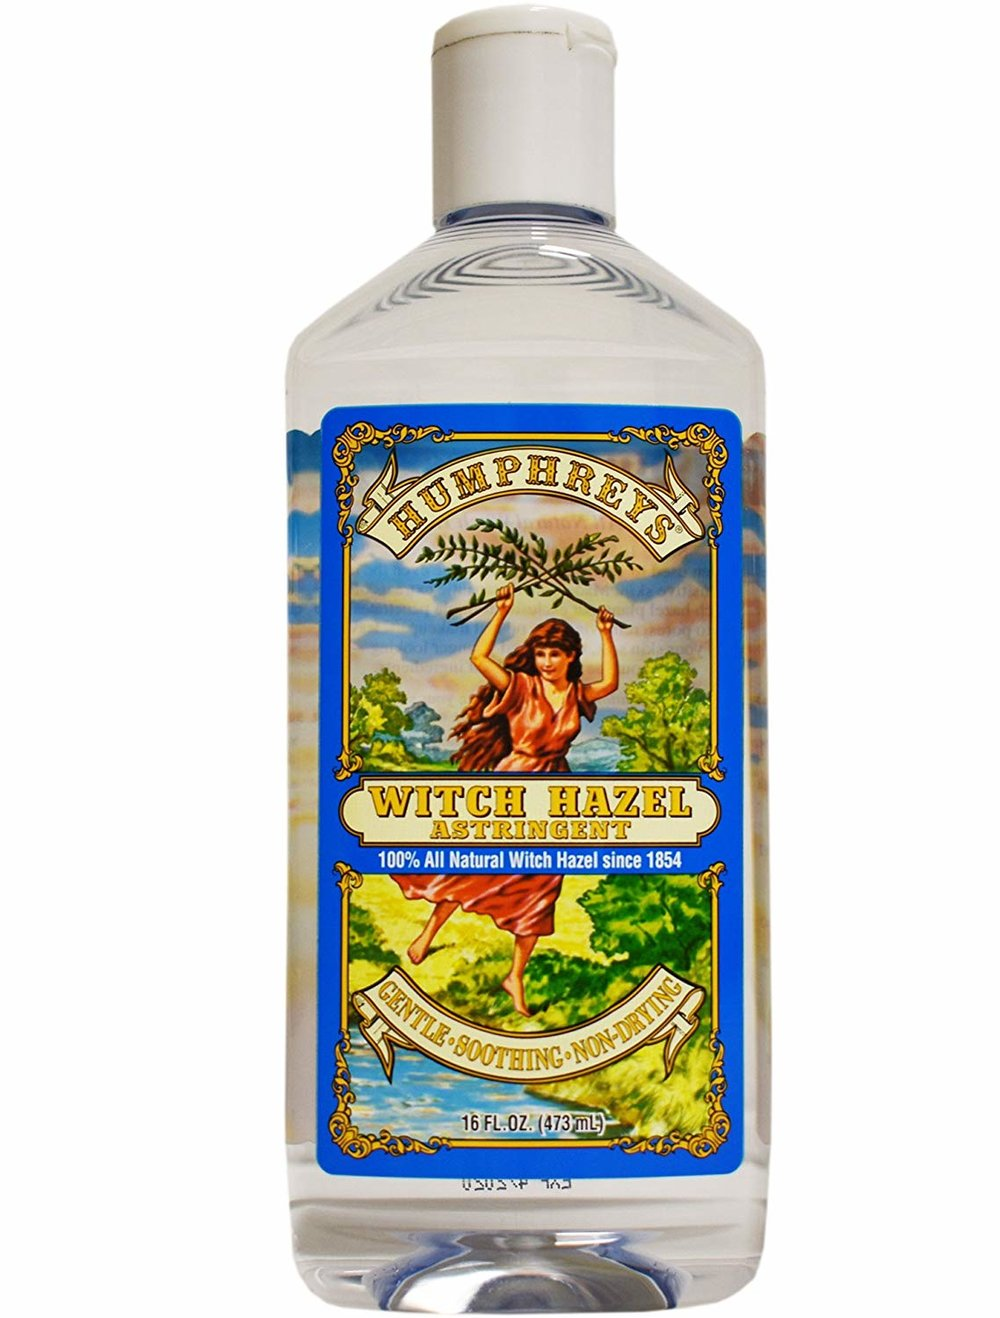 A good quality witch hazel is a great thing to add to sprays and toners. It keeps the water from growing bacteria and keeps the oils mixed. Most witch hazels are distilled with formaldehyde but this brand is formaldehyde free!